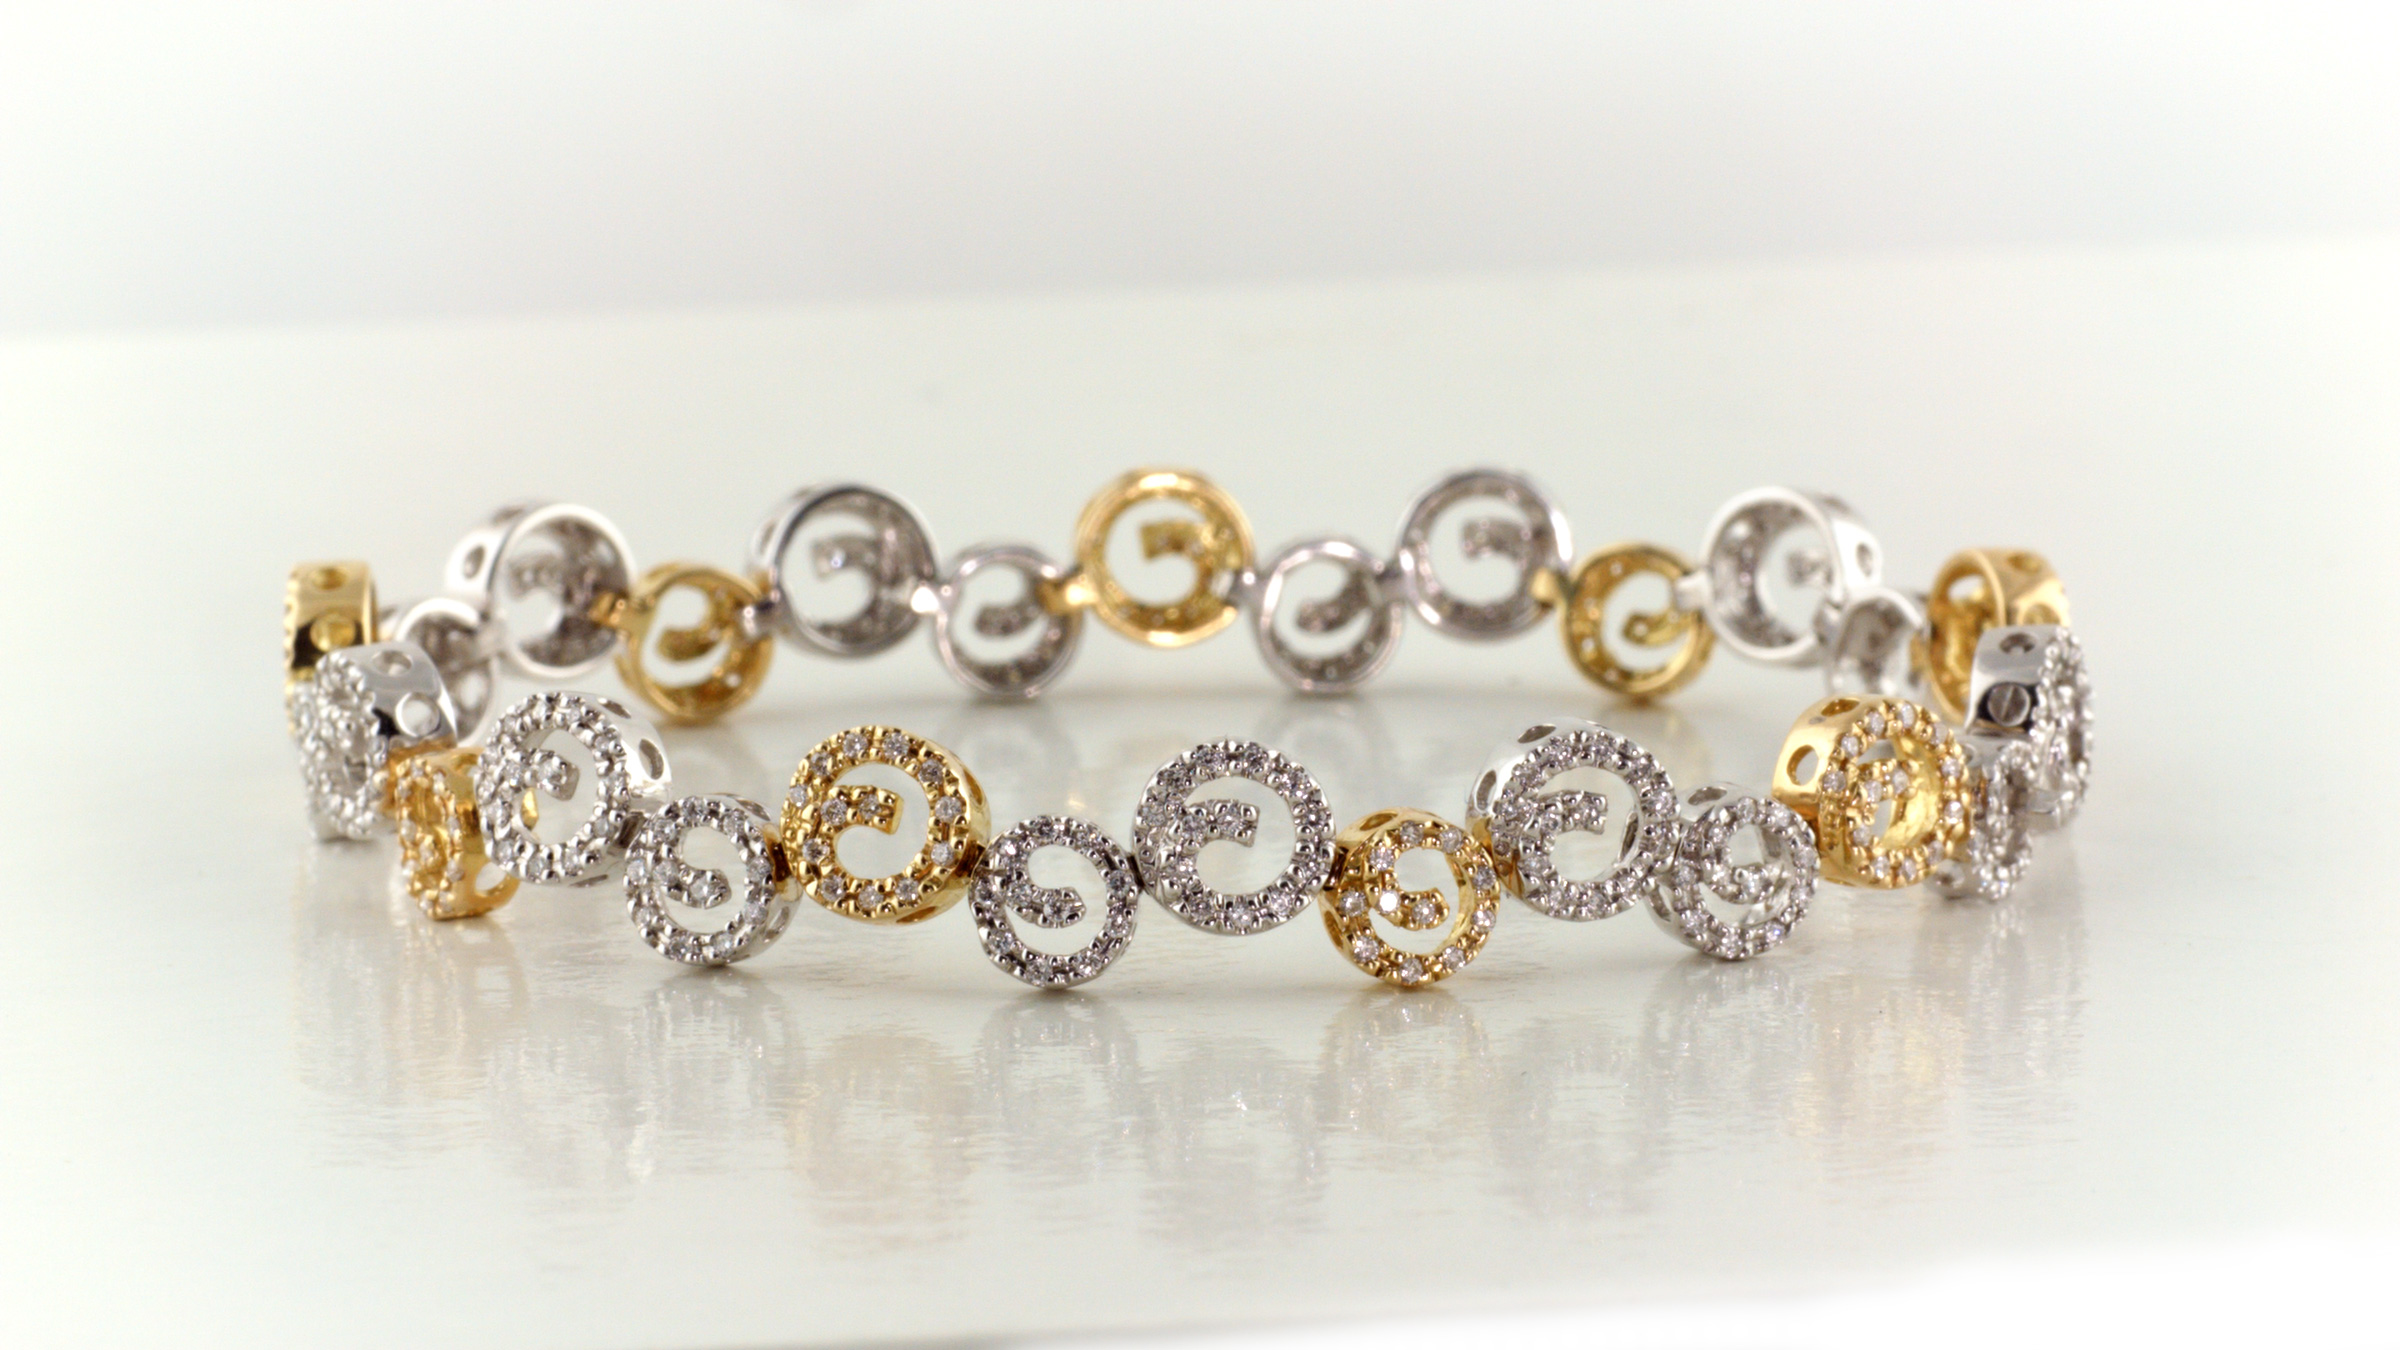 Diamond bracelet in 18K yellow and white gold.